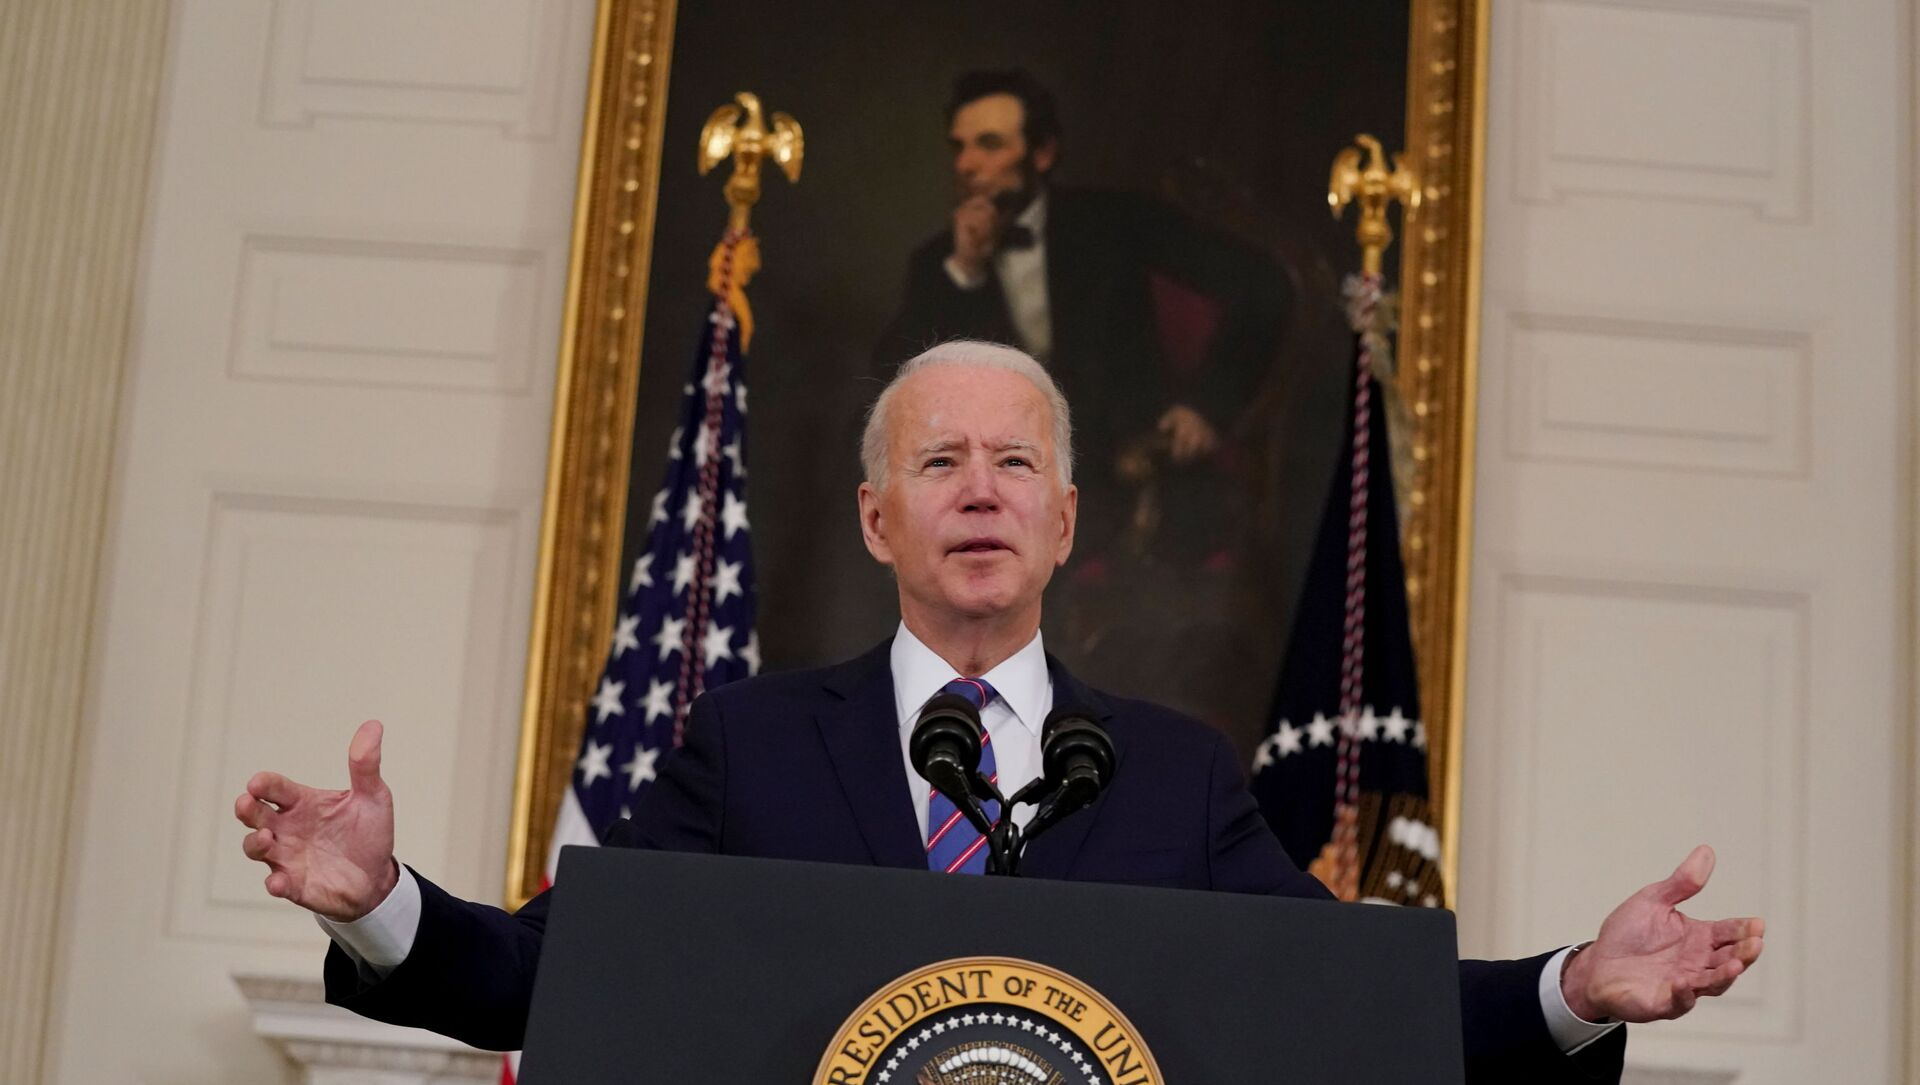 U.S. President Joe Biden delivers remarks on the Department of Labor's March jobs report from the State Dining Room at the White House in Washington, D.C., U.S.,  April 2, 2021. - Sputnik International, 1920, 06.04.2021